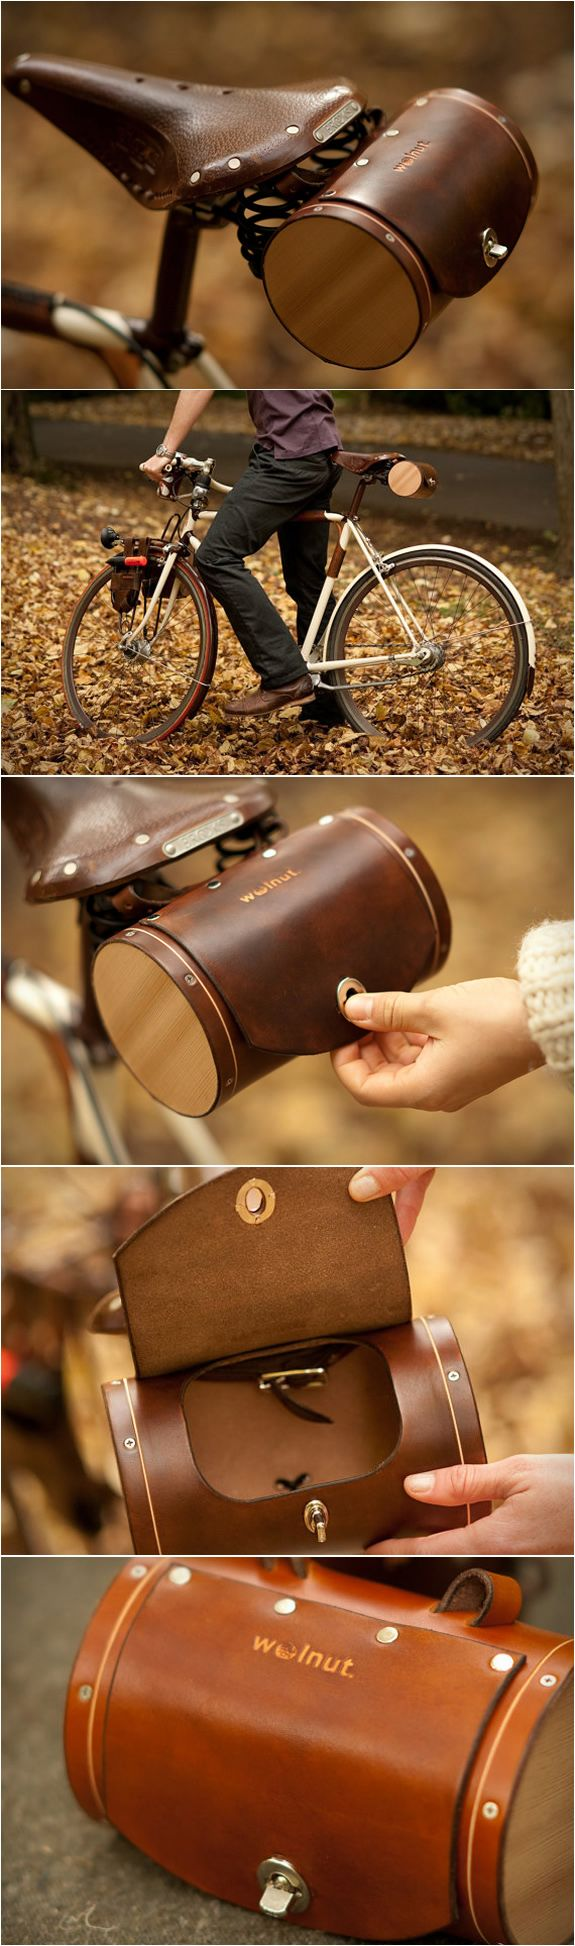 Bicycle Saddle Bag / Barrel Bag // cycling // bikes - fashion & style. Very cool!